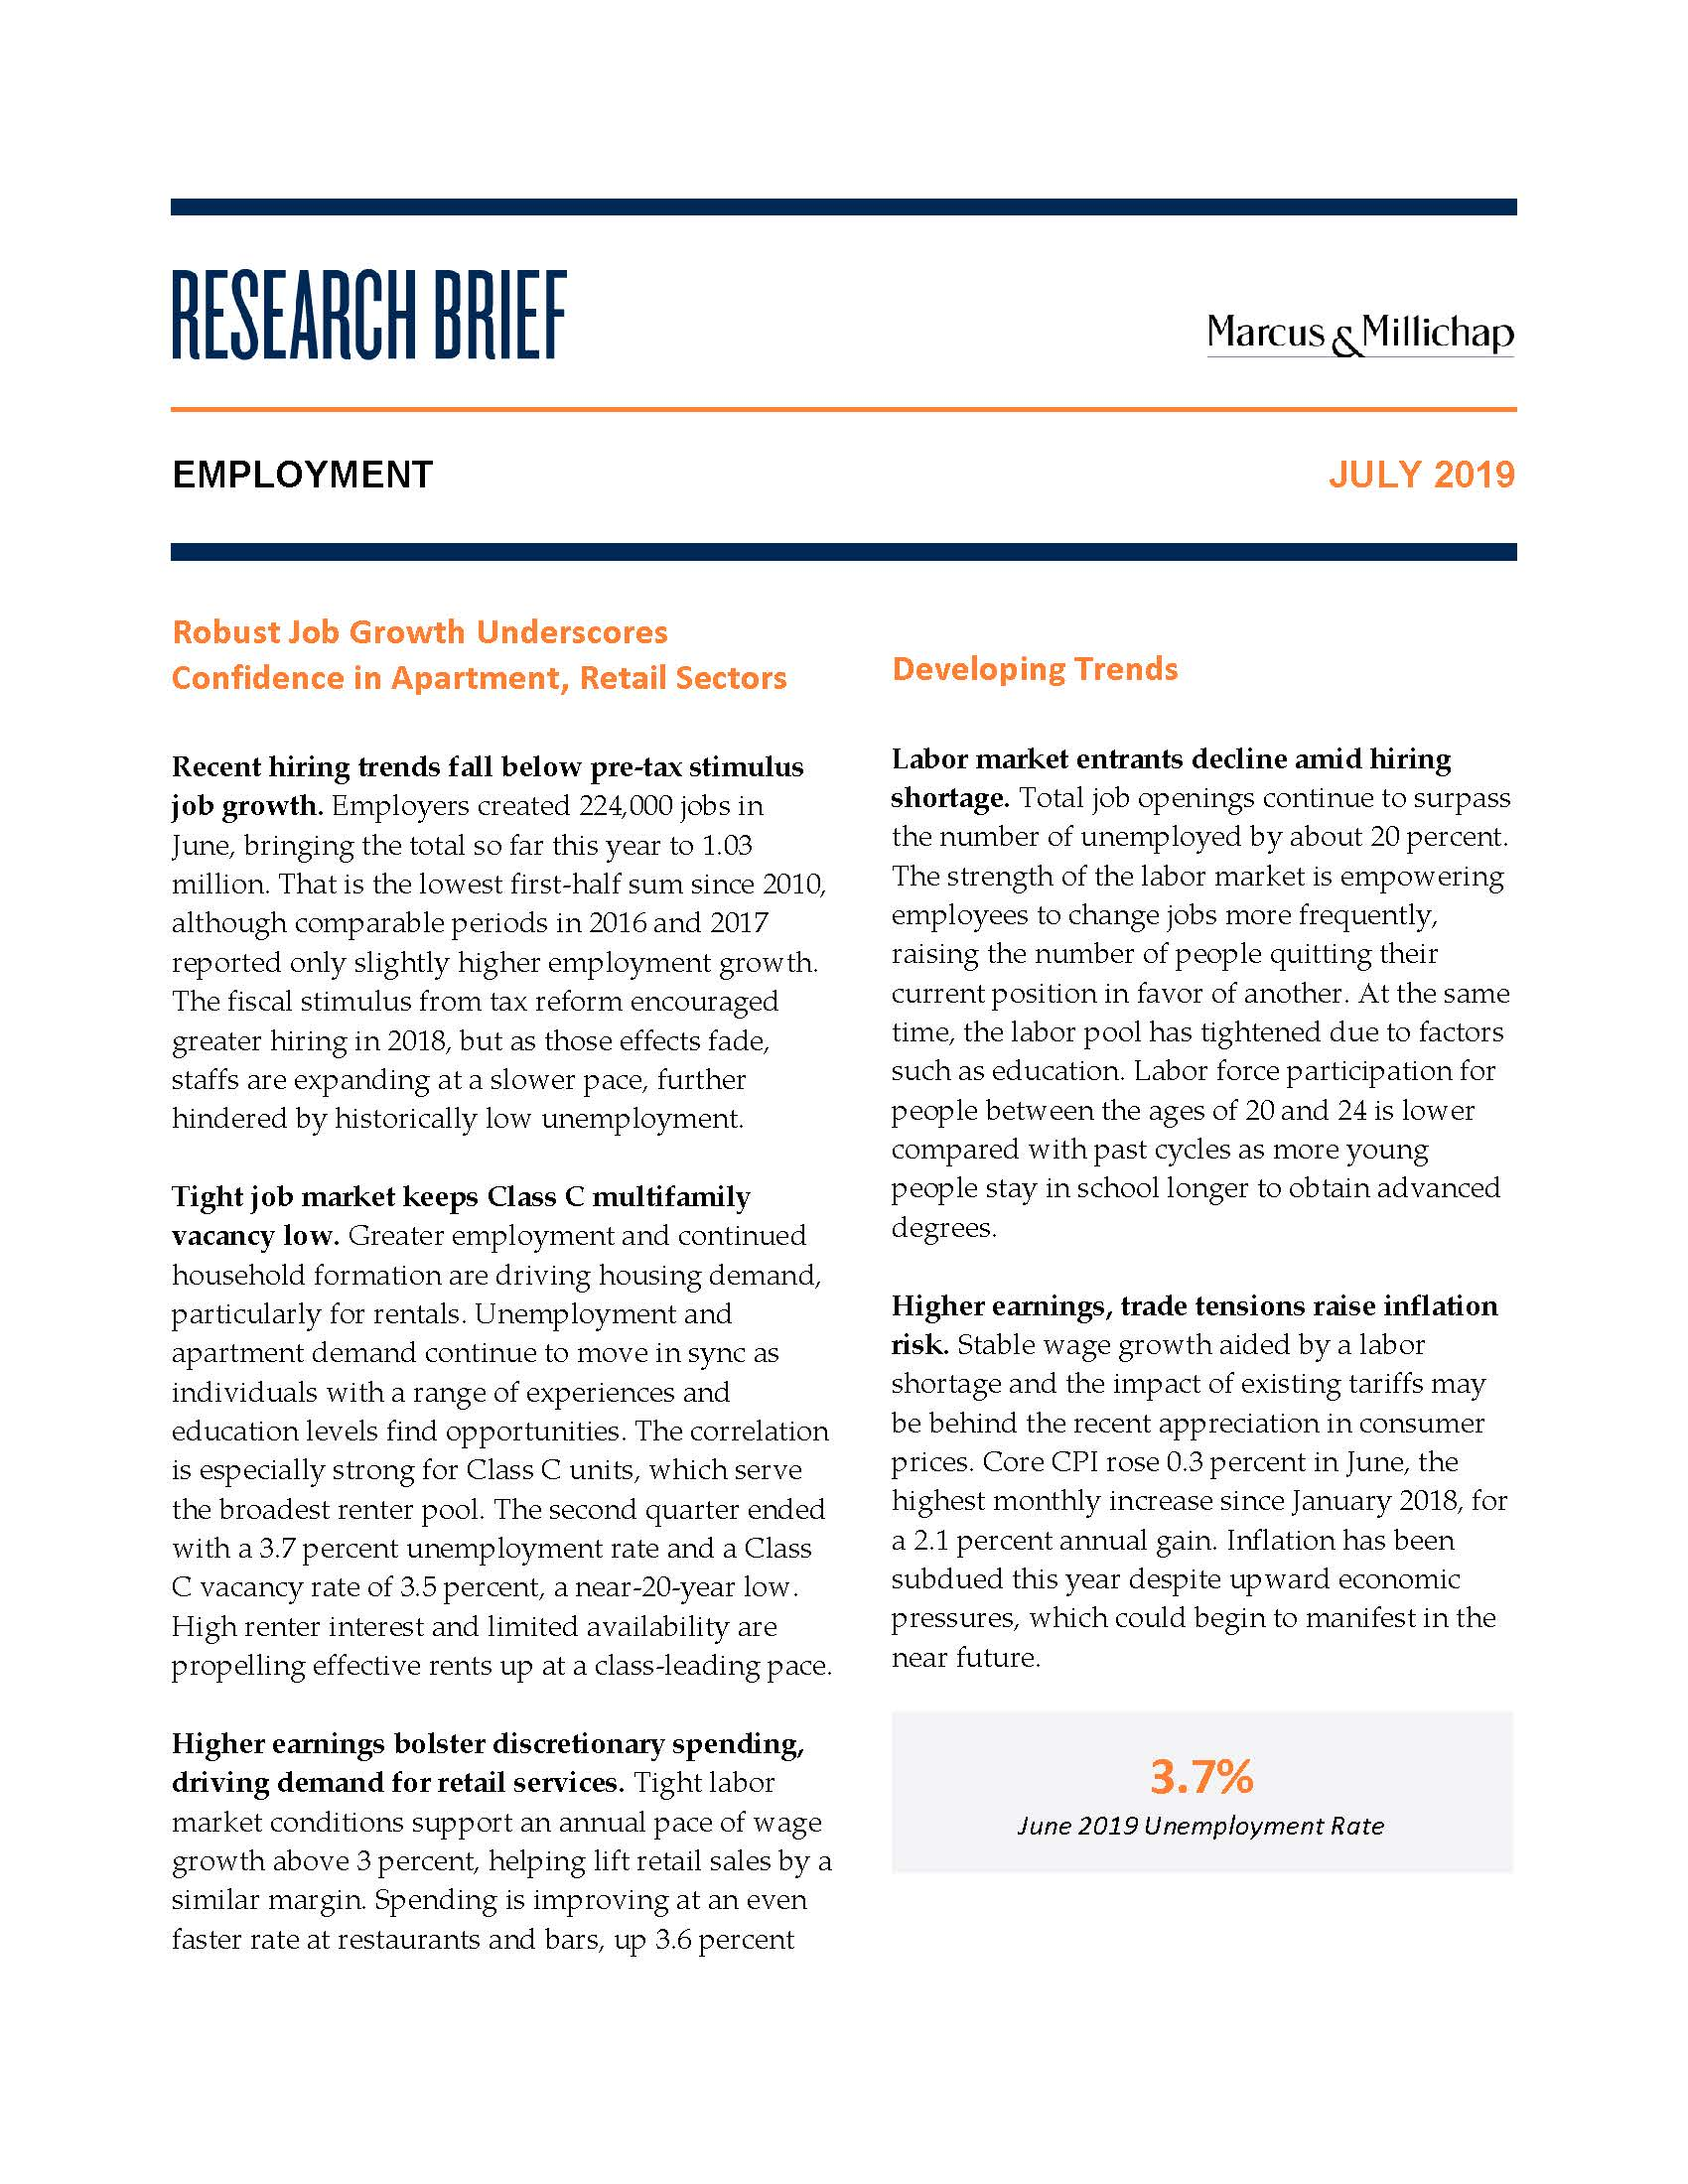 Research Brief - July 2019Employment - Recent hiring trends fall below pre-tax stimulus job growth. Employers created 224,000 jobs in June, bringing the total so far this year to 1.03 million. That is the lowest first-half sum since 2010, although comparable periods in 2016 and 2017 reported only slightly higher employment growth. The fiscal stimulus from tax reform encouraged greater hiring in 2018, but as those effects fade, staffs are expanding at a slower pace, further hindered by historically low unemployment.